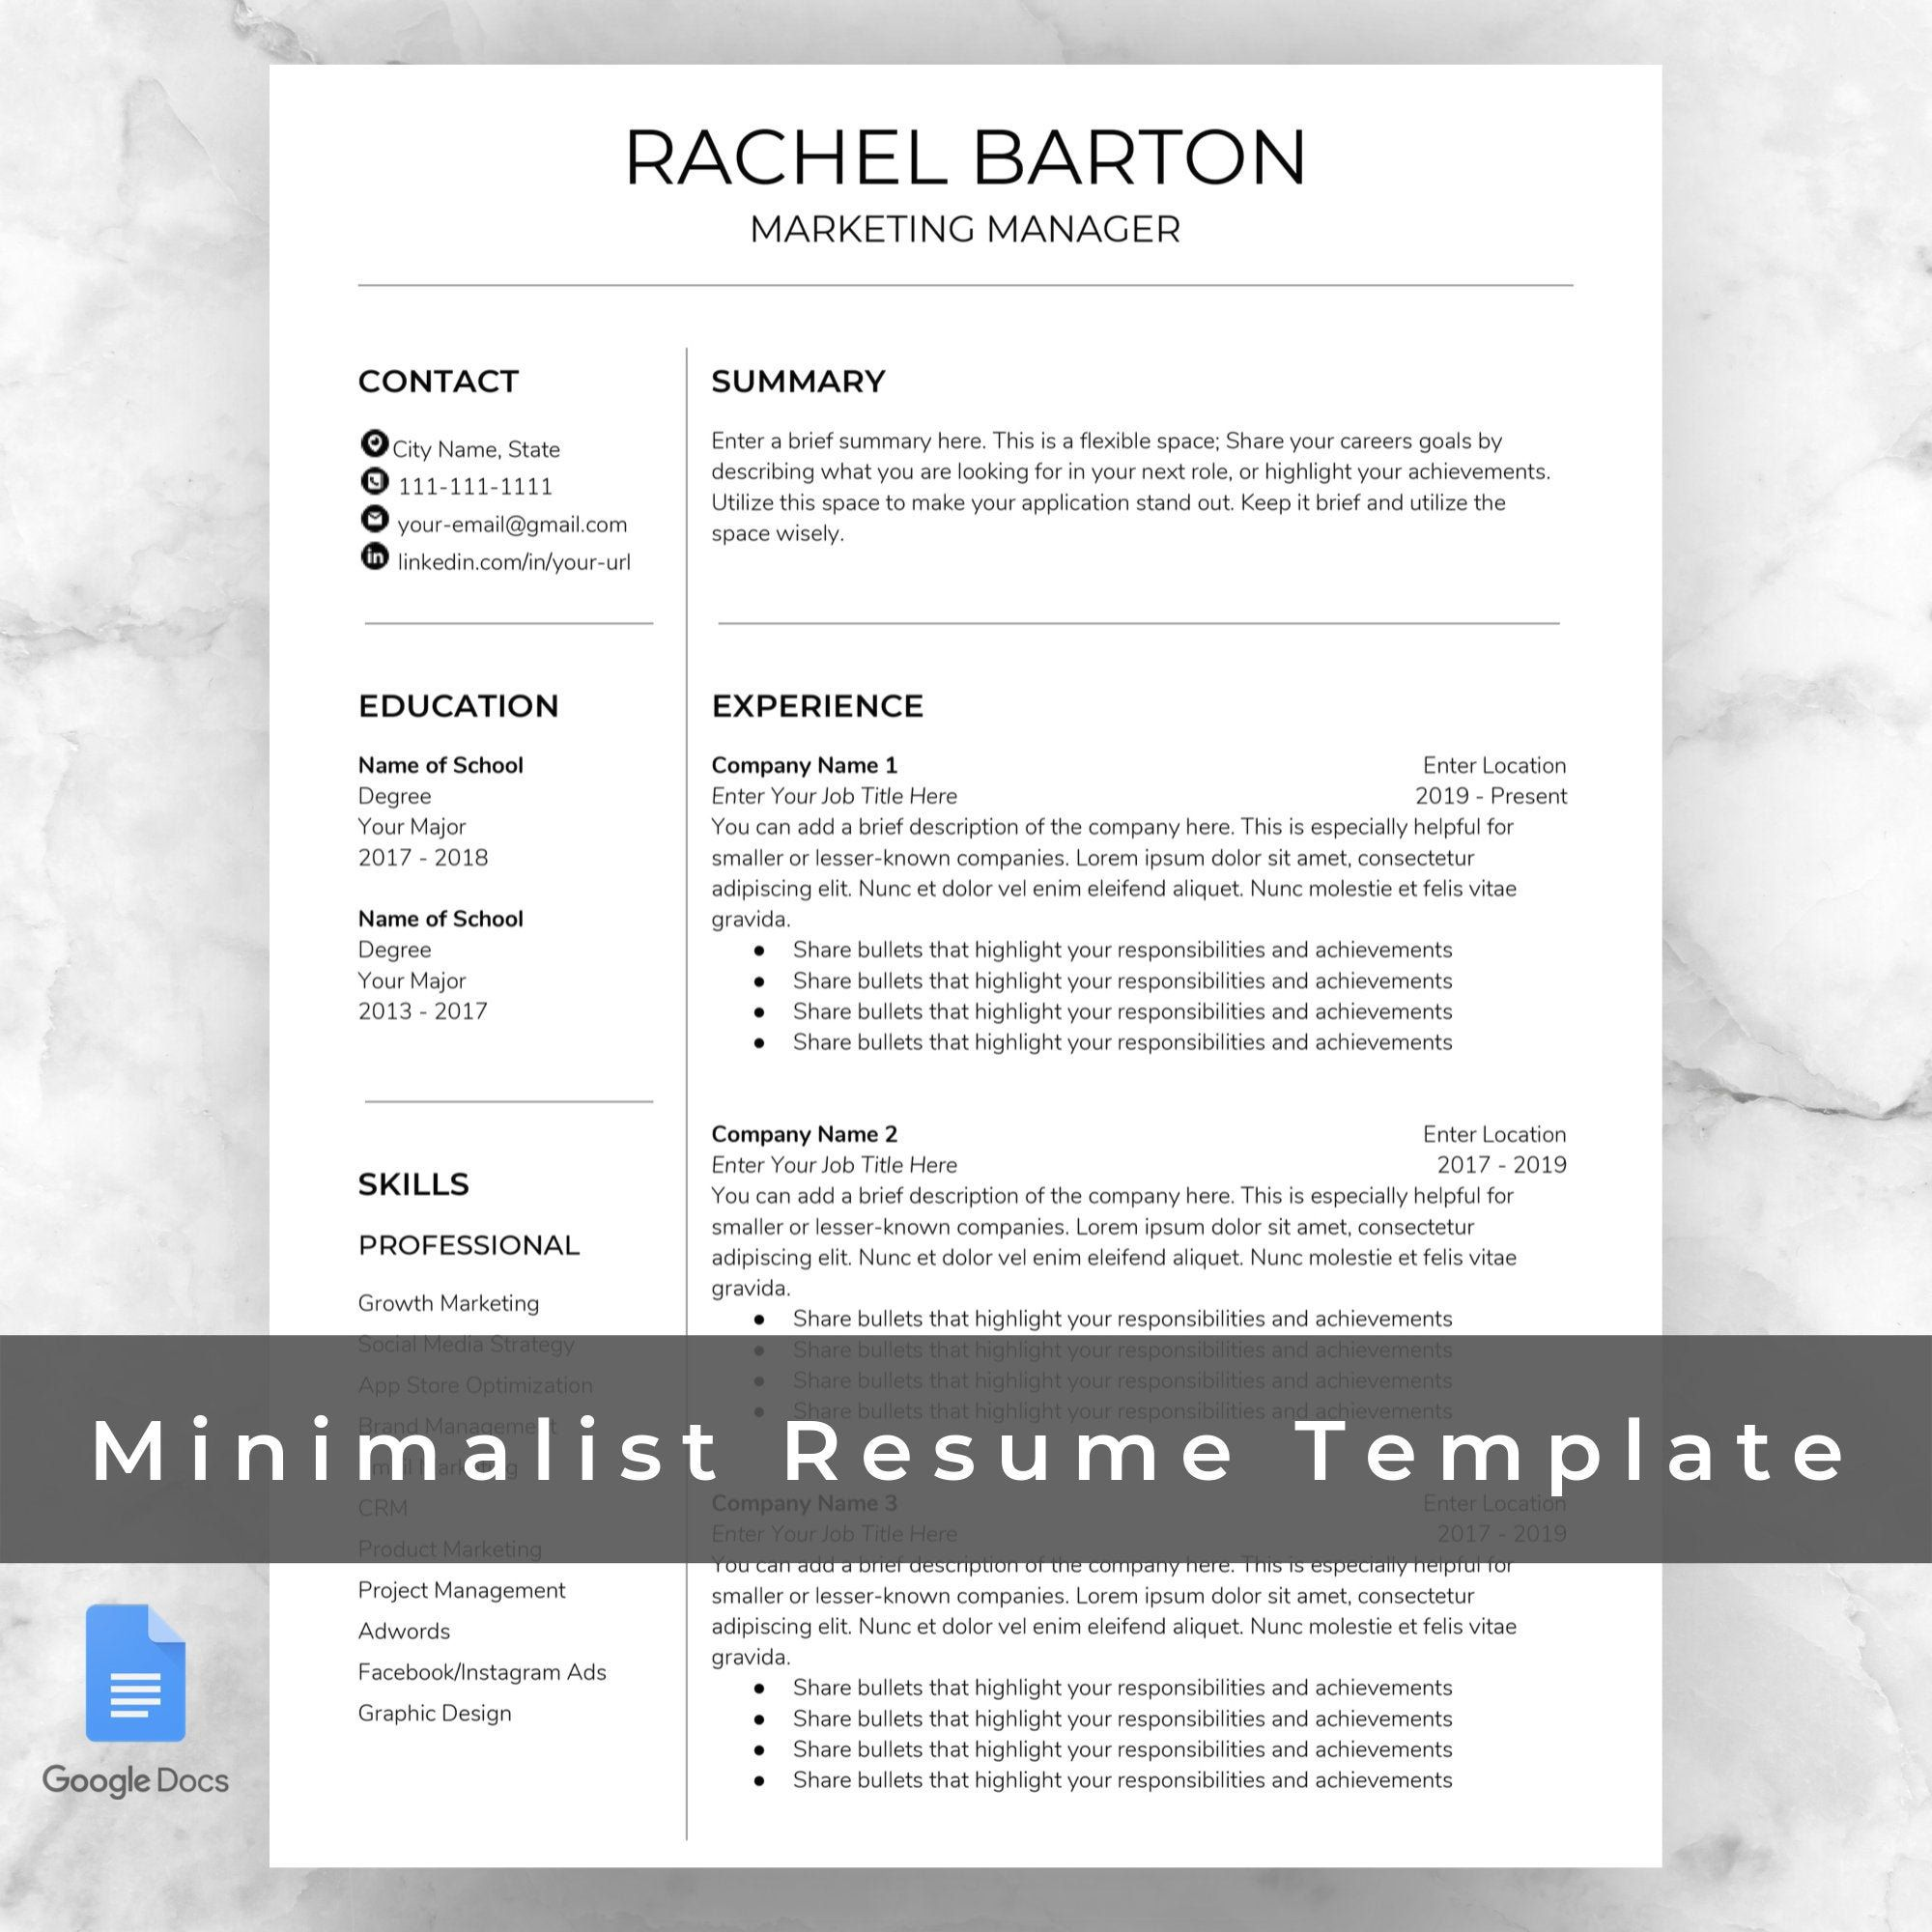 Minimalist Resume Template Google Docs / Two Pages & Cover